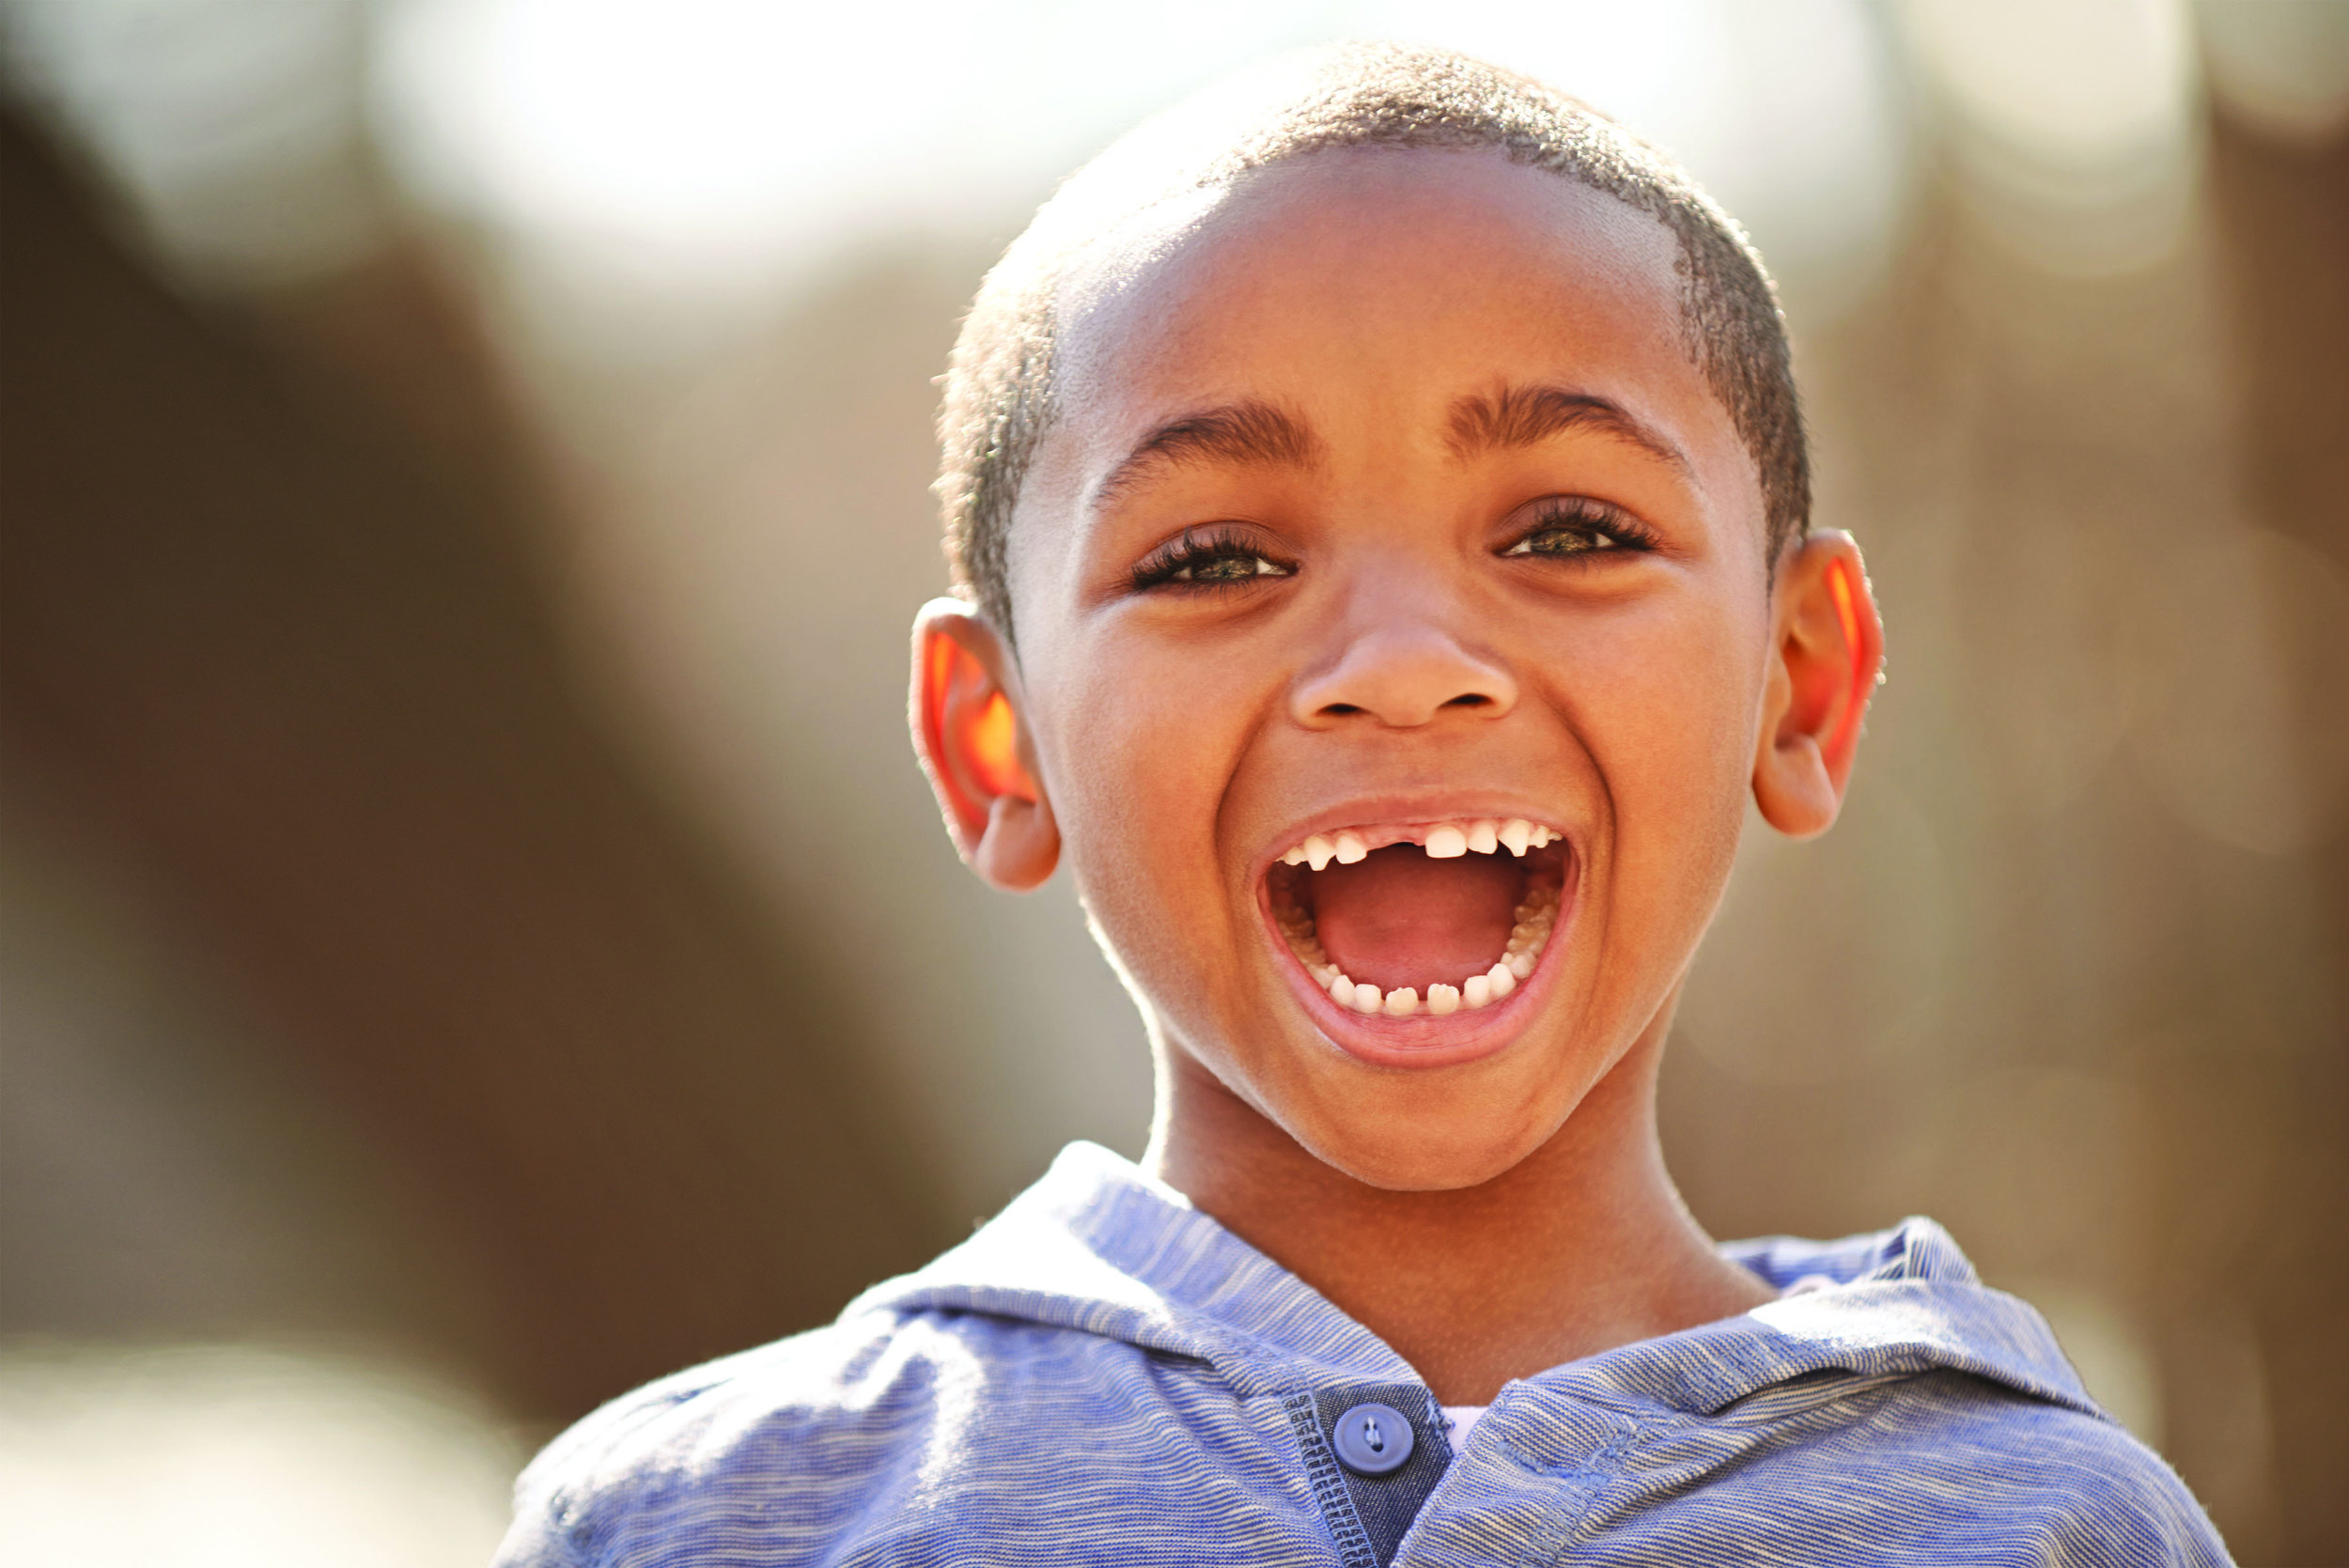 Supports children in foster care -